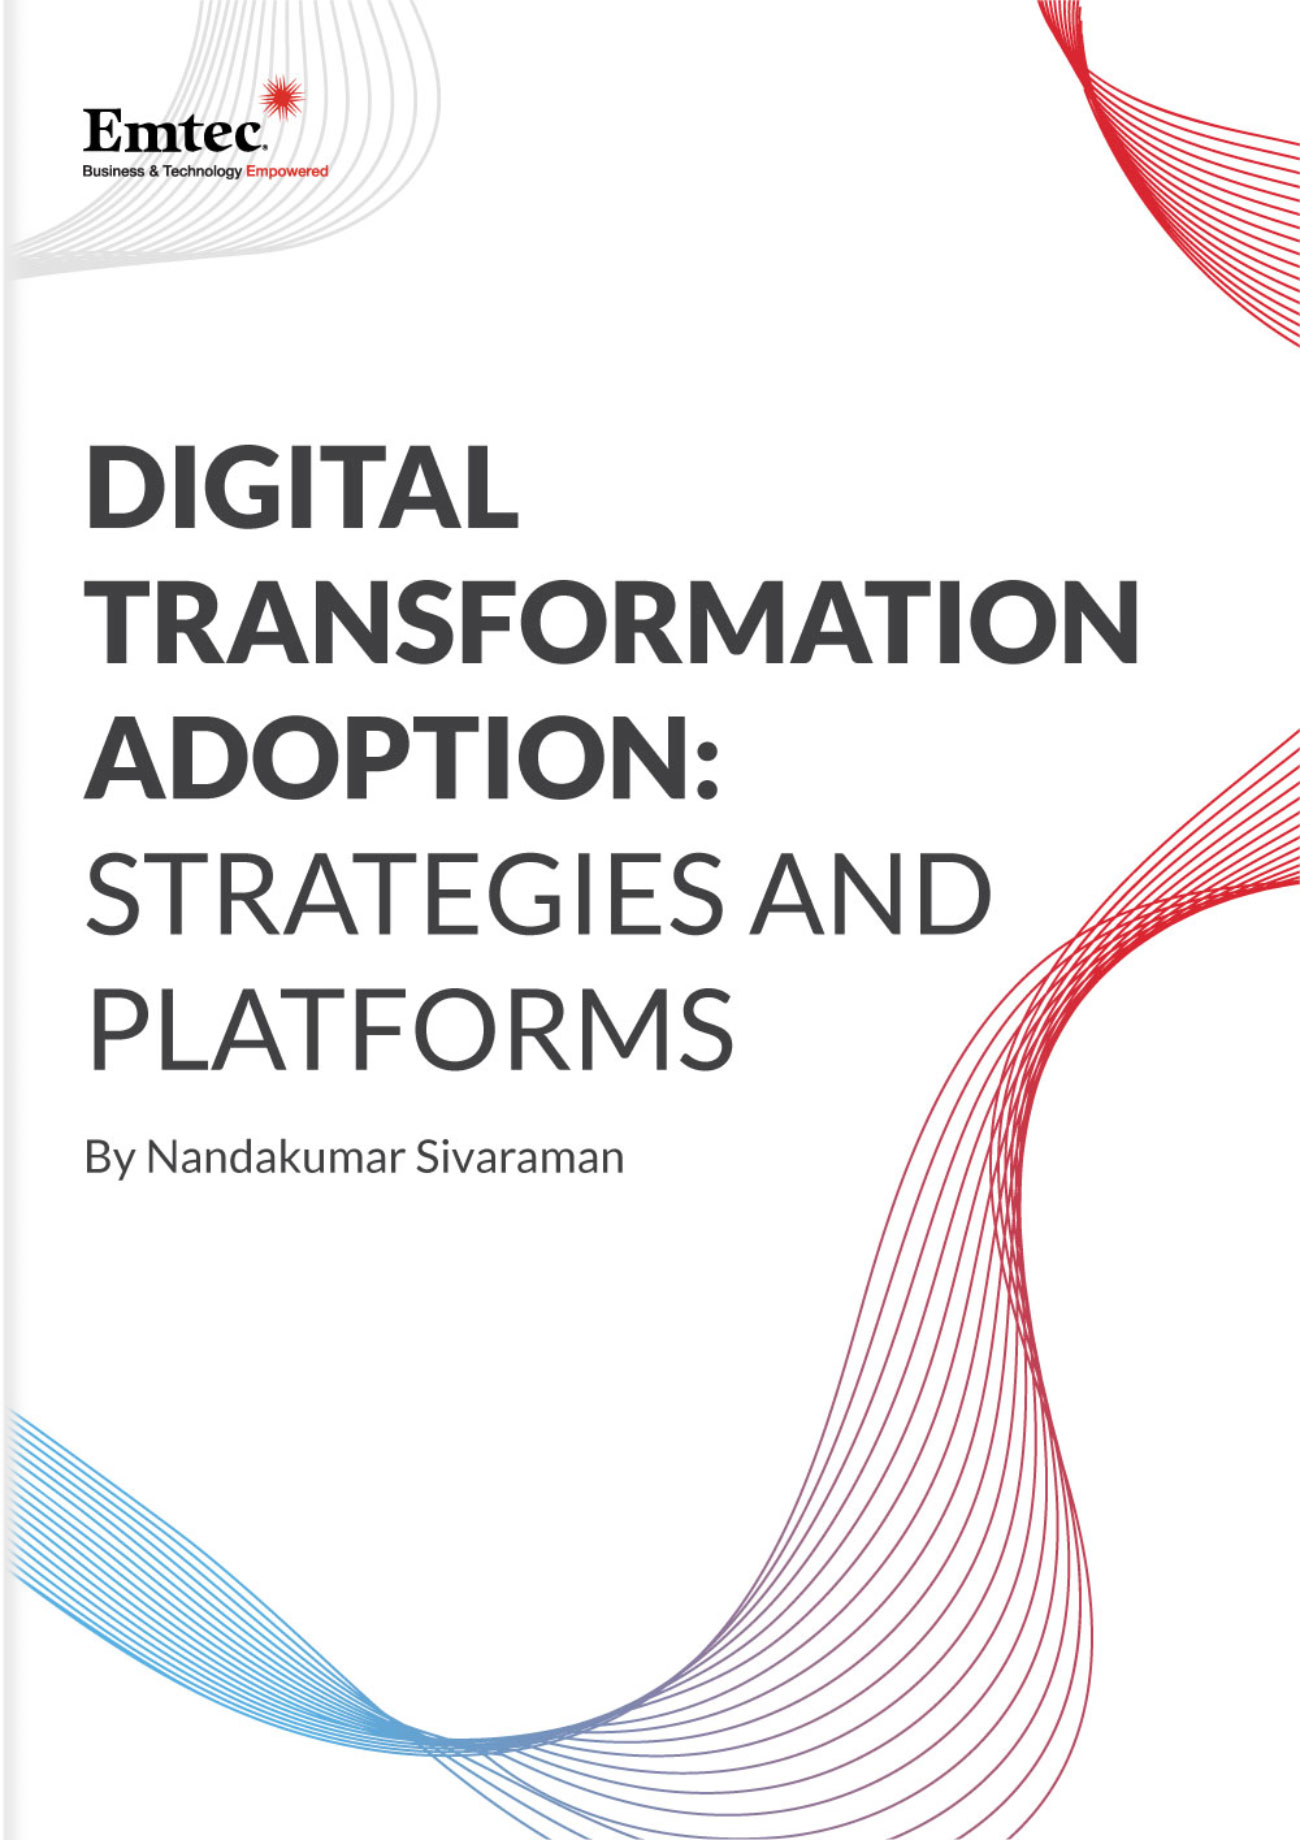 Digital Transformation Adoption